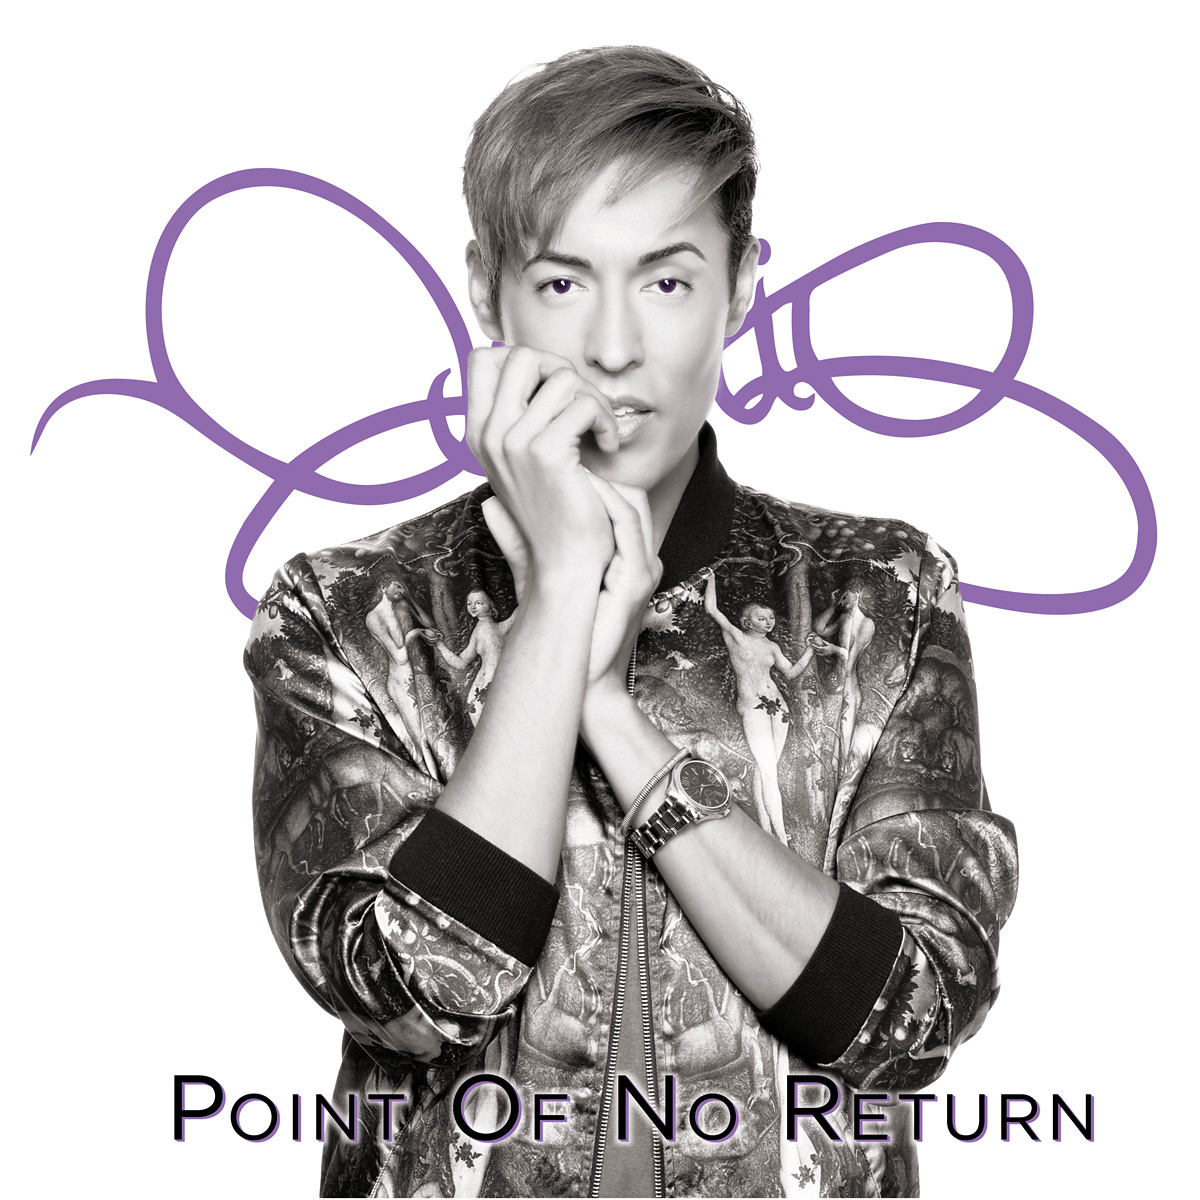 Get Dario's album: Point Of No Return